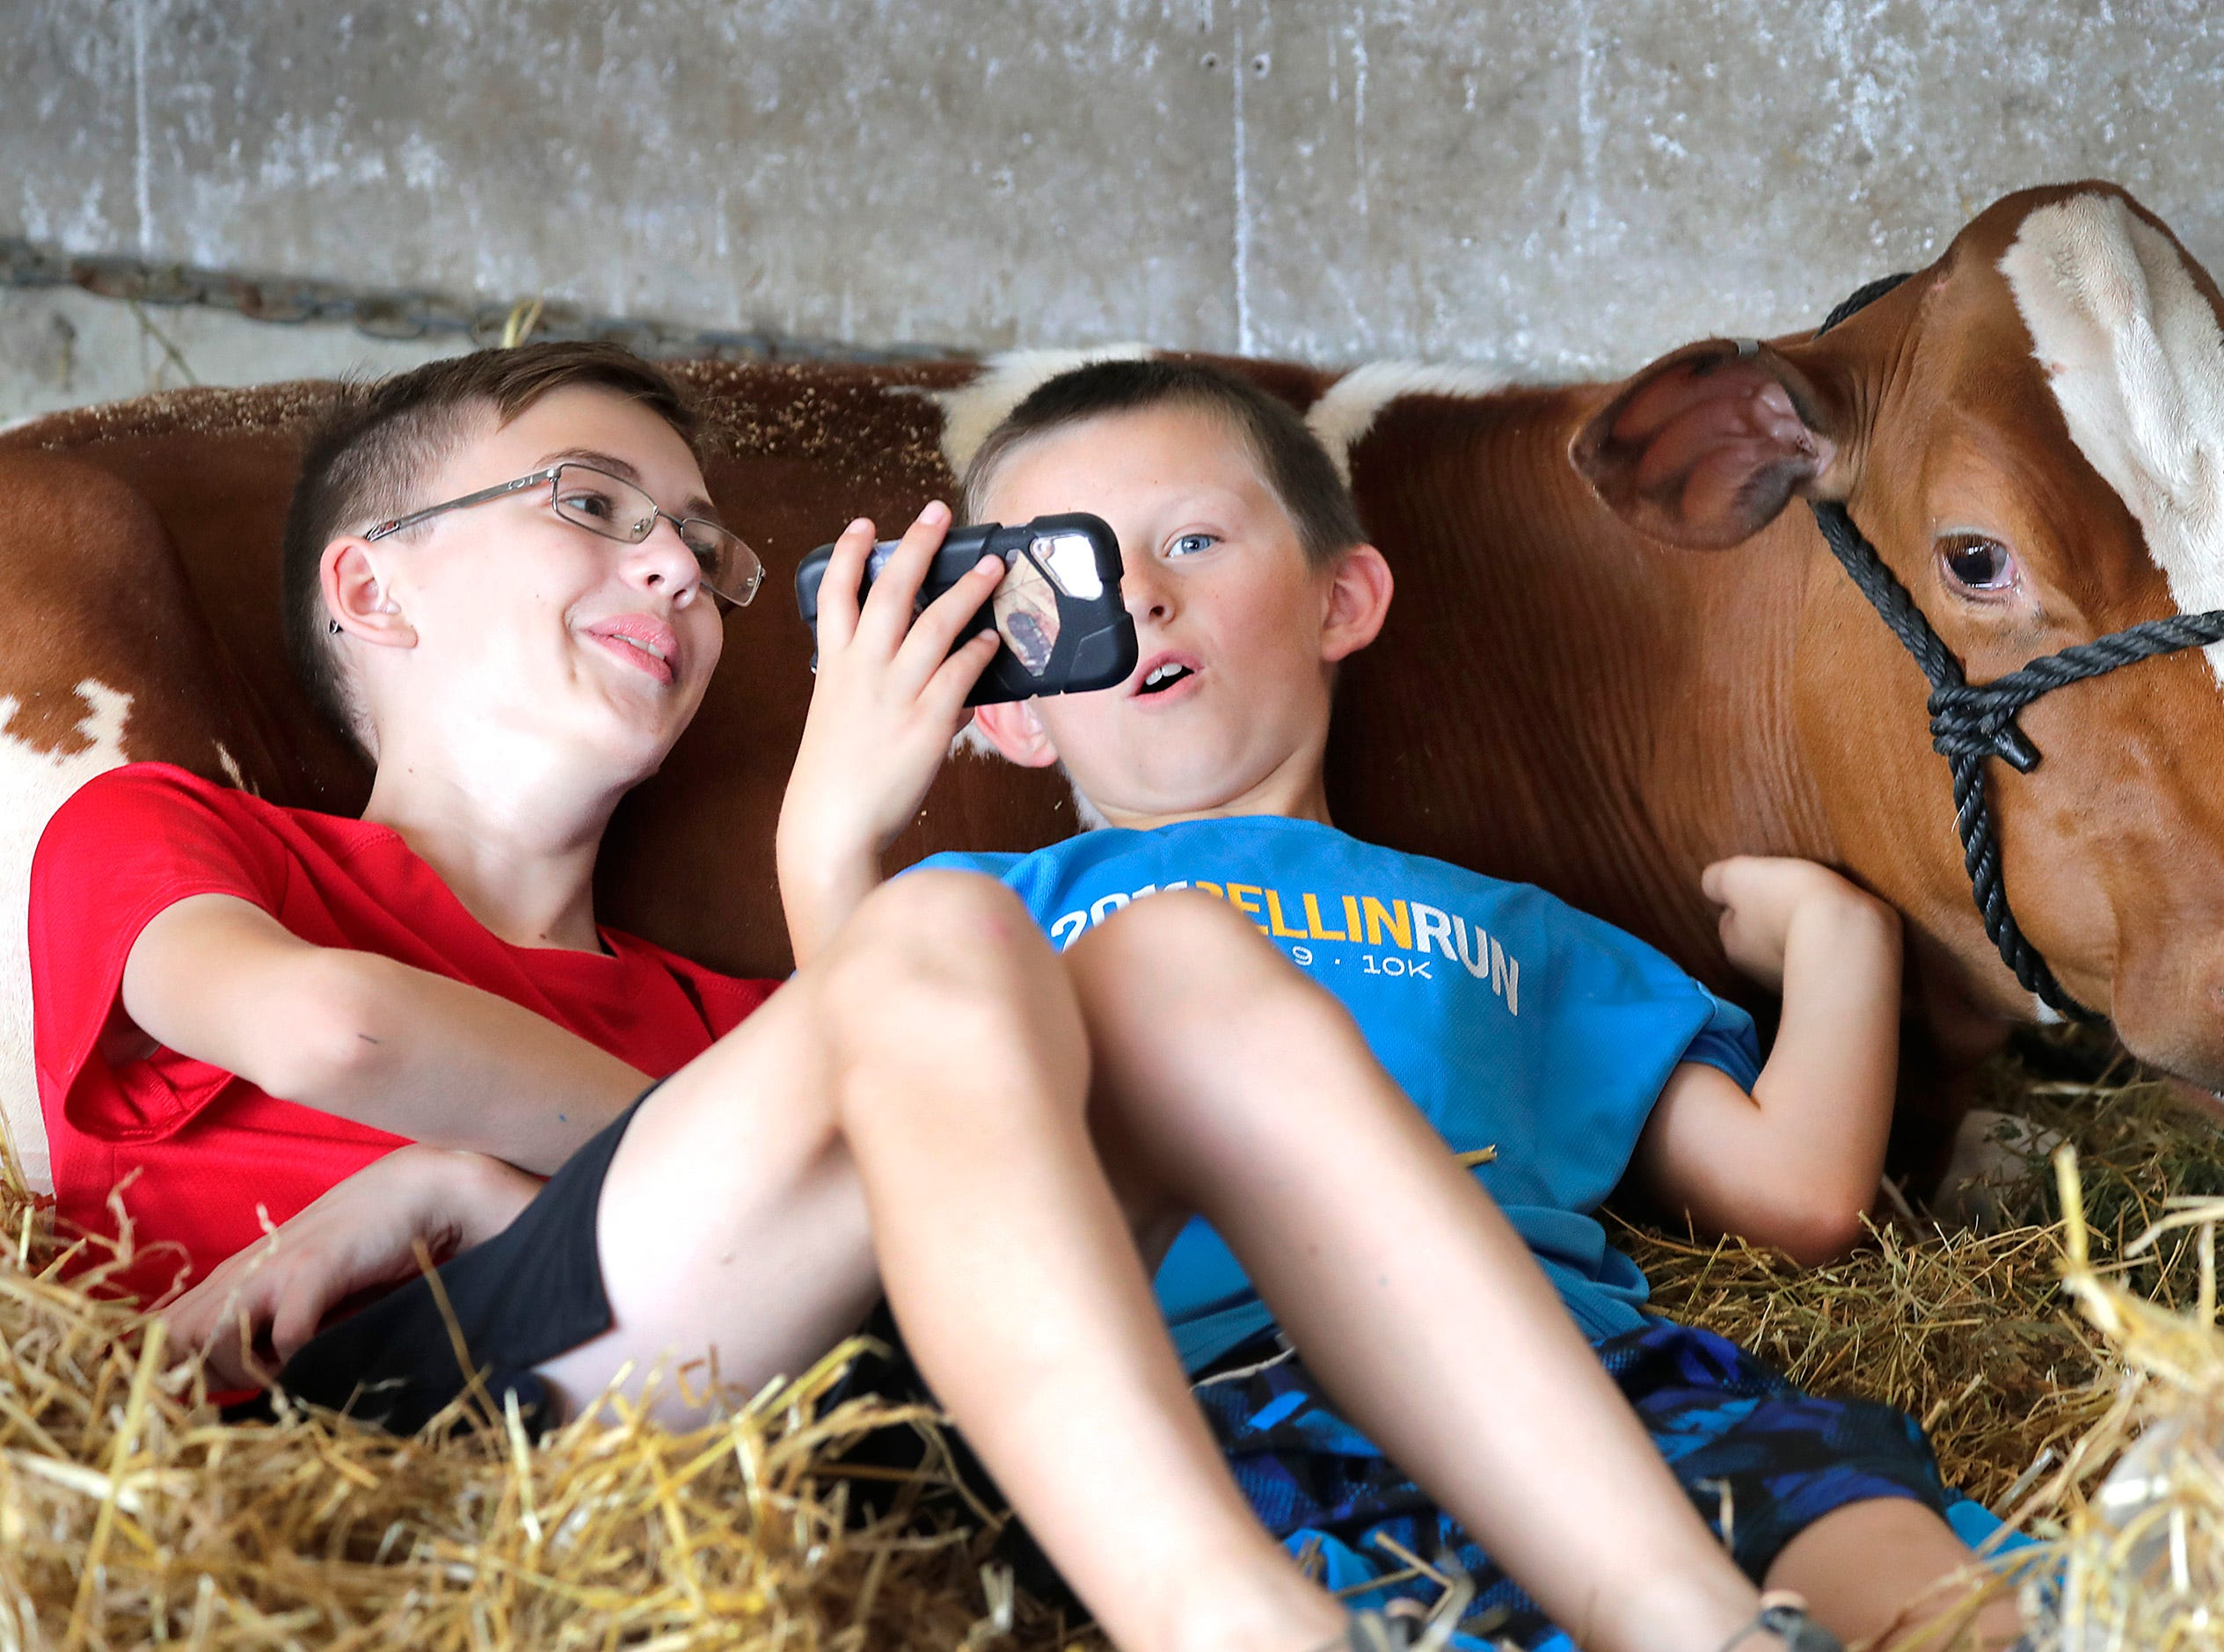 Adam Karweick, on left from Seymour, and Kody Banker, Black Creek, watch videos while relaxing during the Outagamie County Fair on Wednesday, July 25, 2018 in Seymour, Wis. 